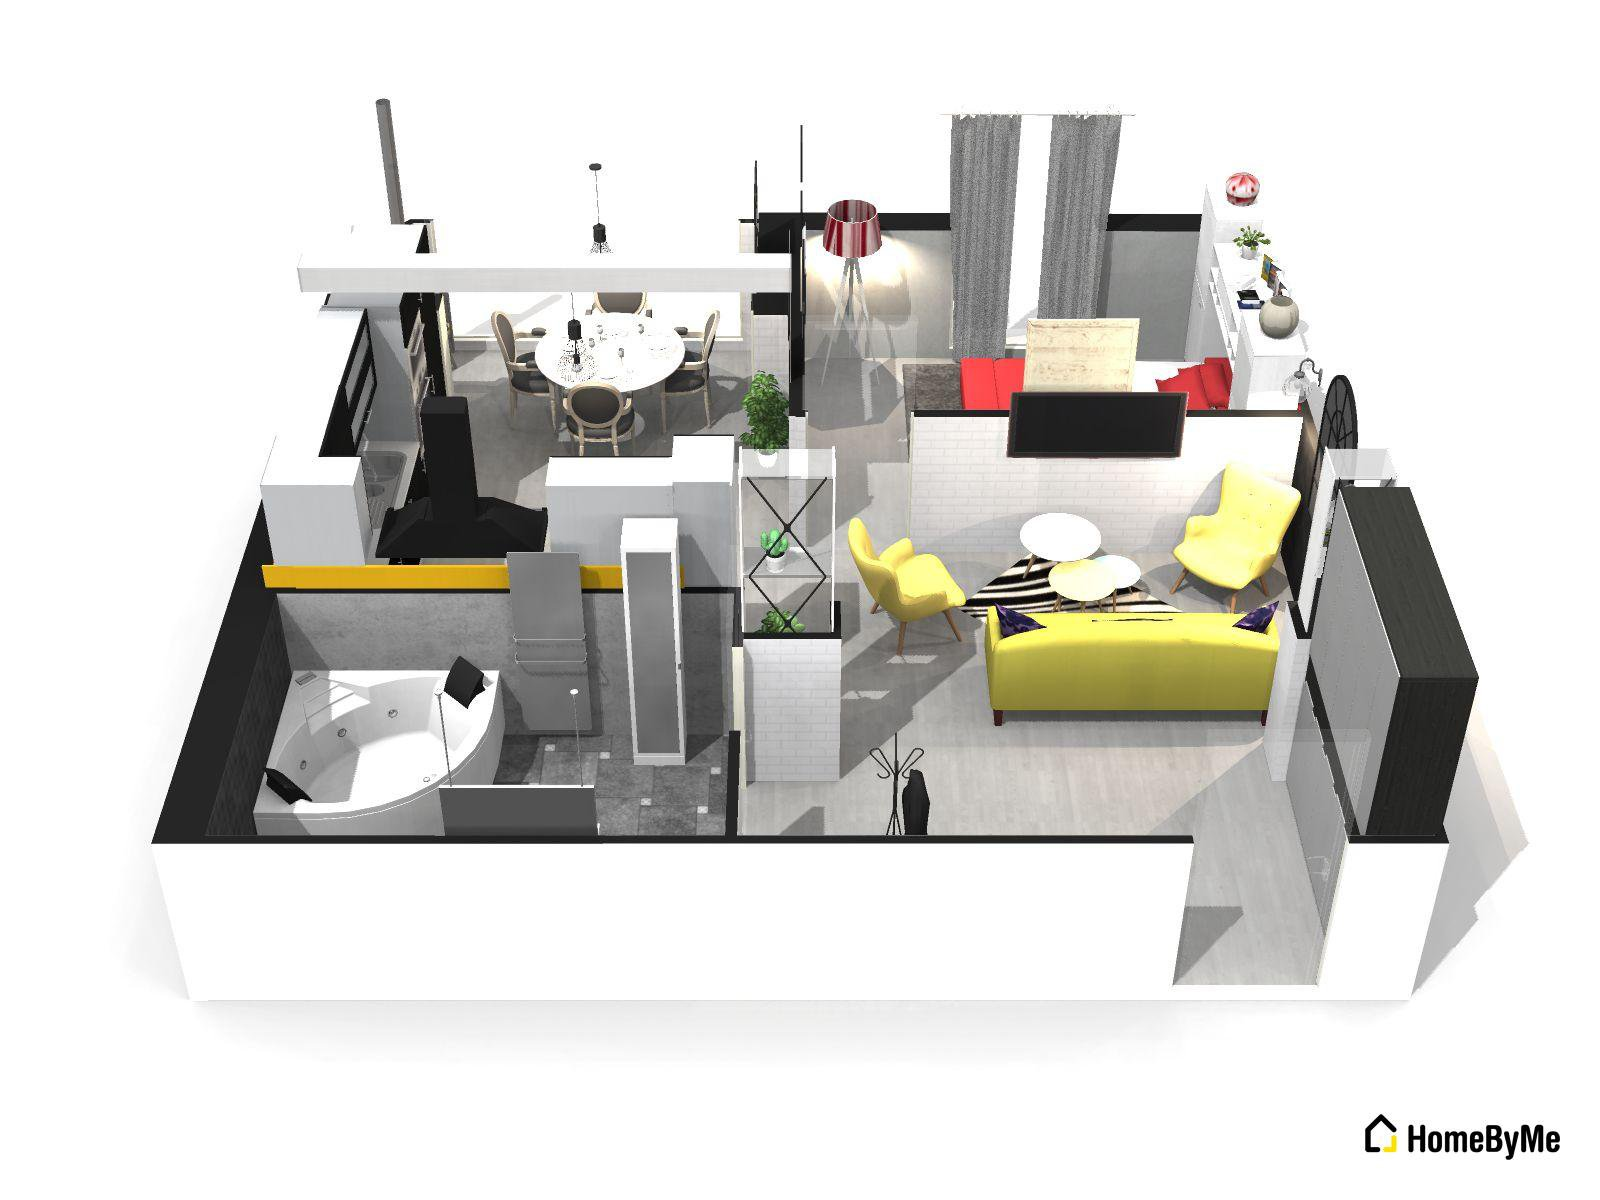 Design Your Home In 3D